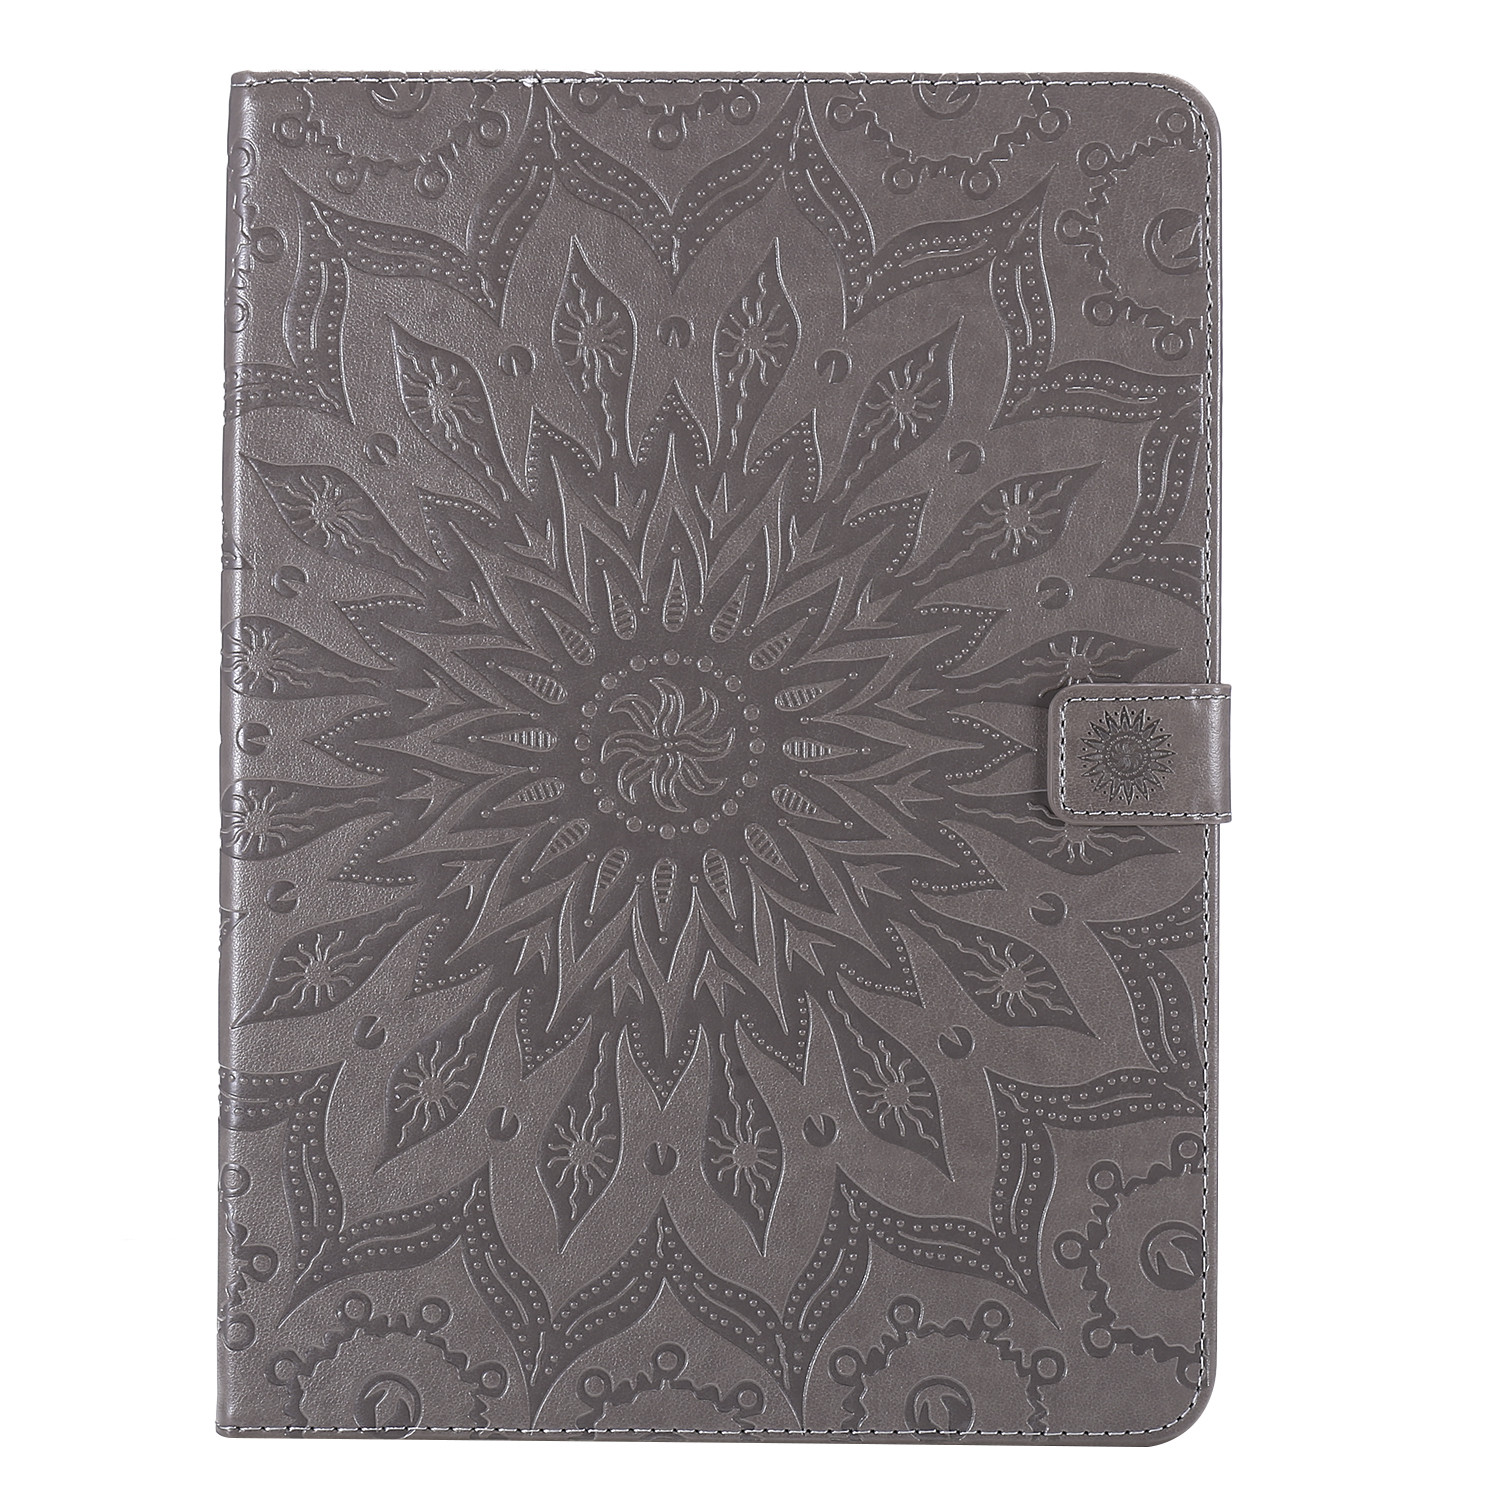 7 Gray Flower 3D Embossed Cover for iPad Pro 12 9 Case 2020 Leather Protective Shell Skin for